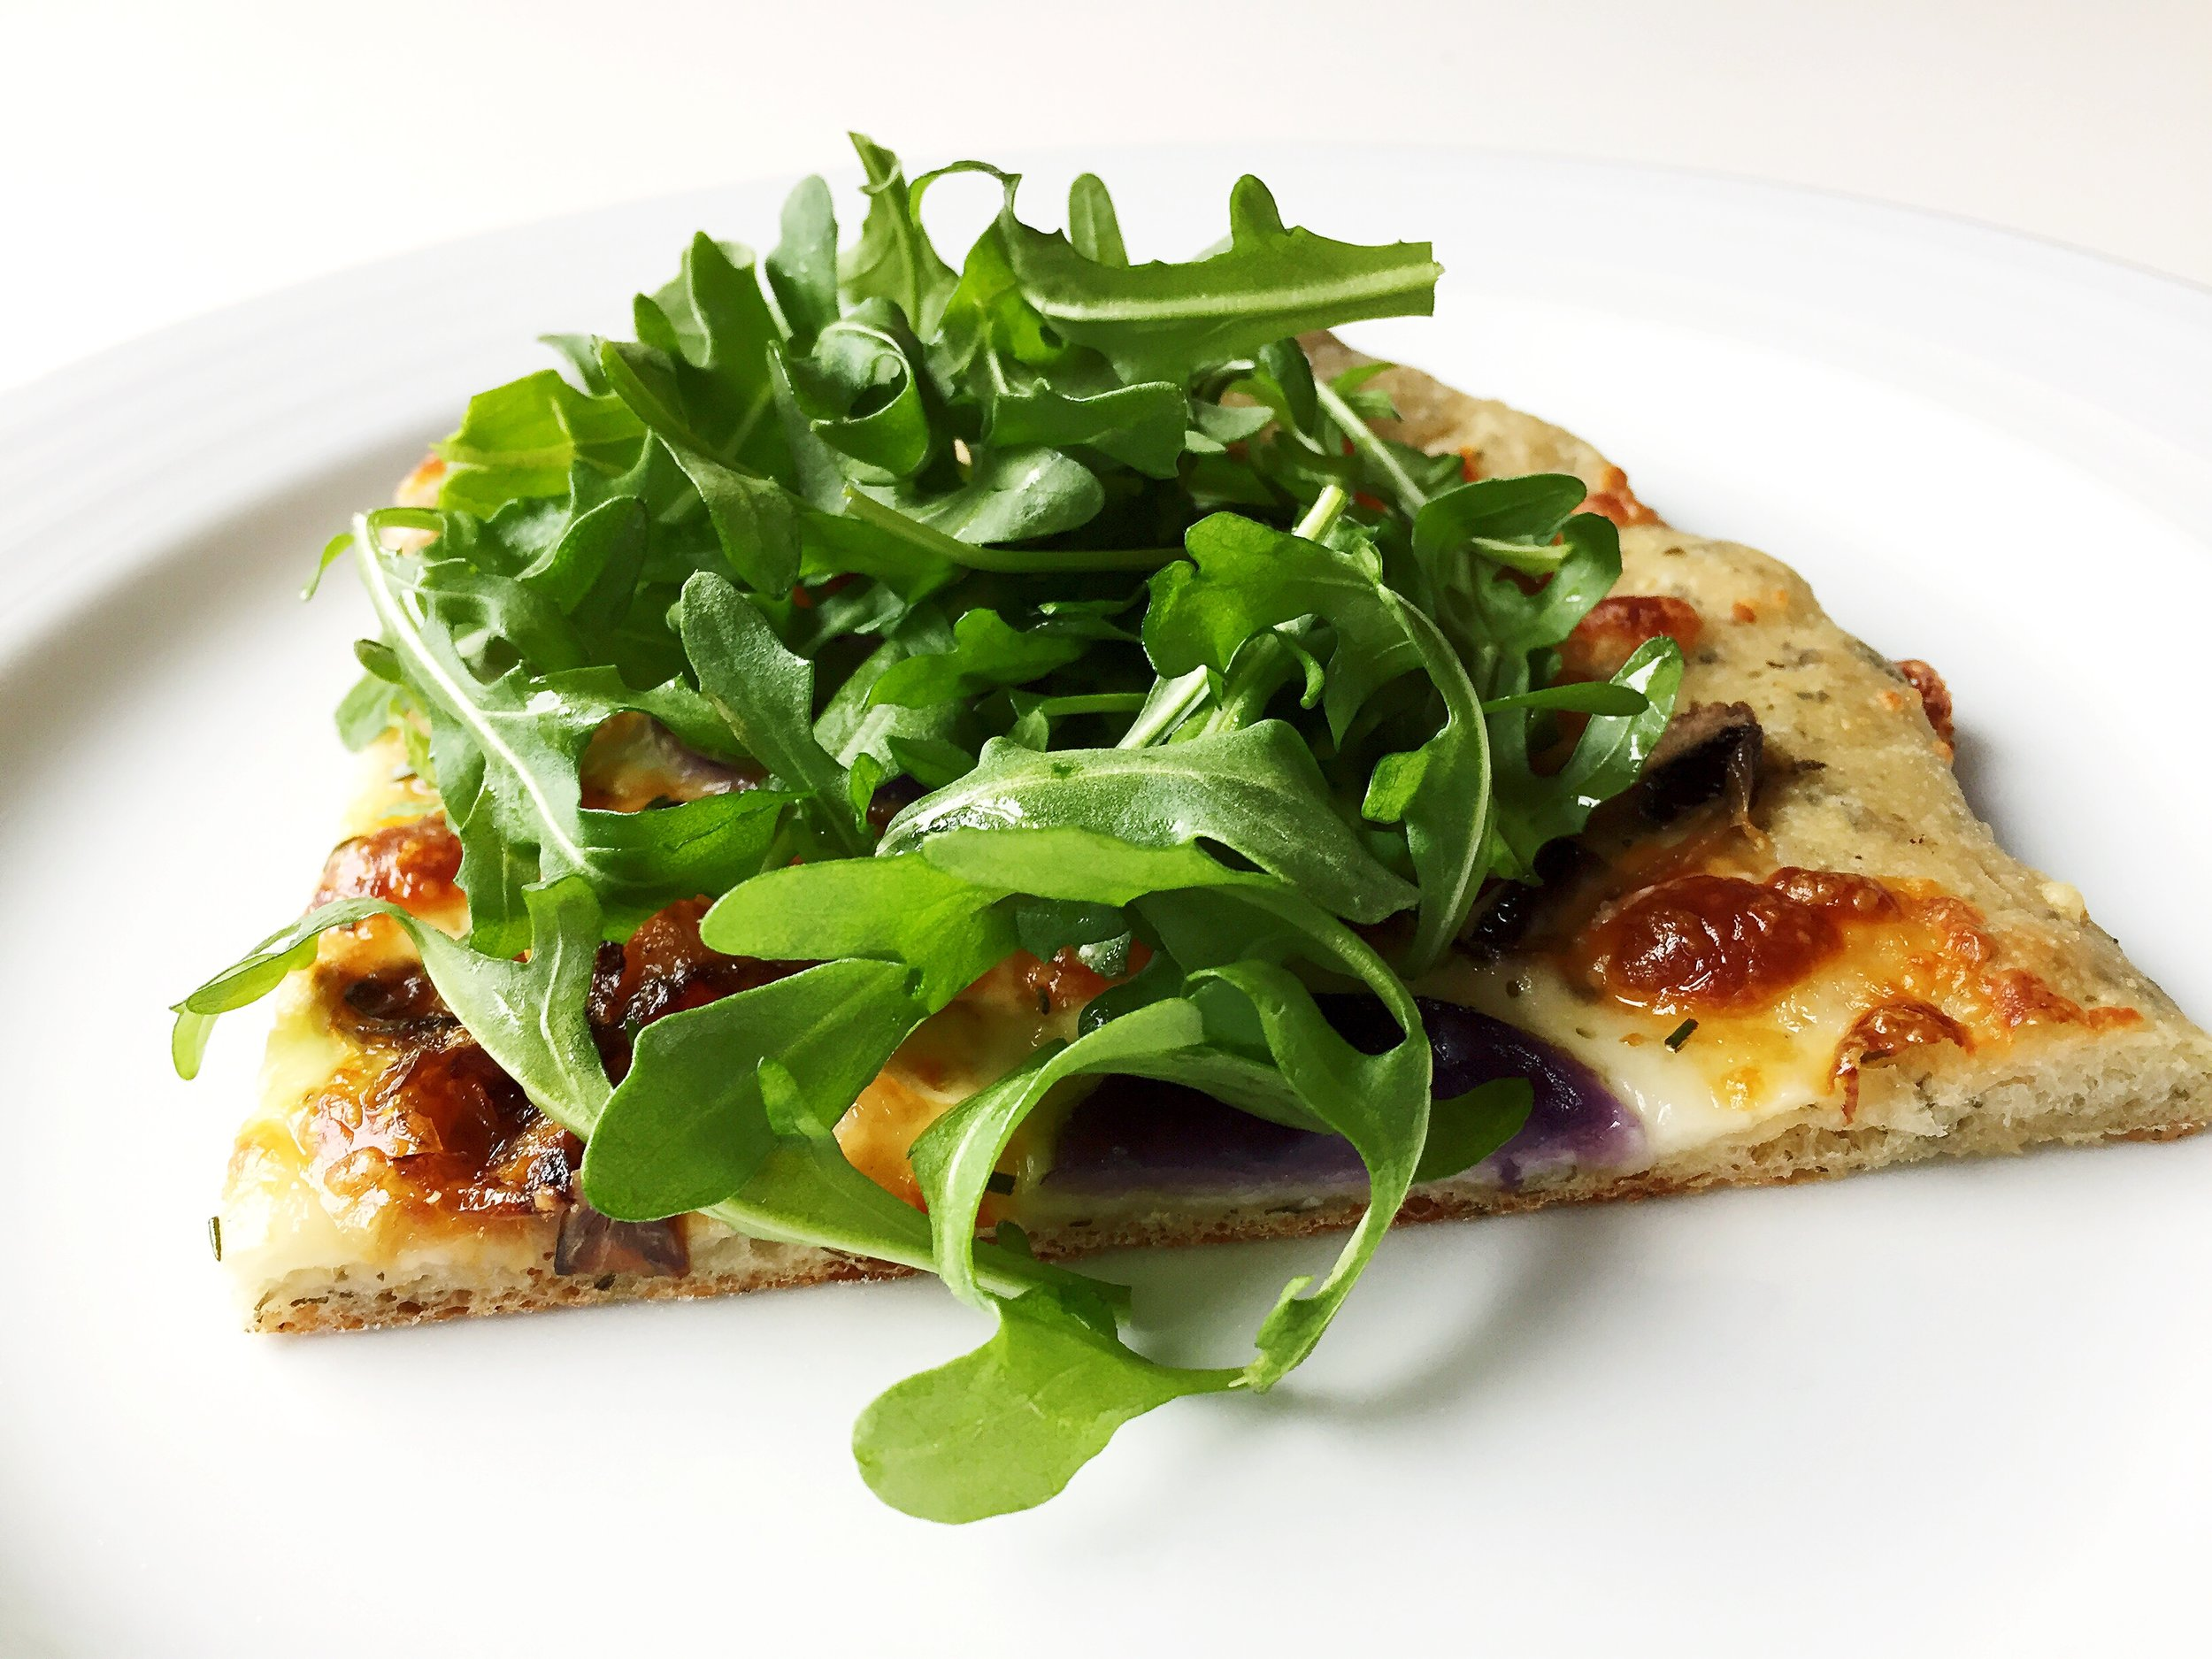 Purple Potato Pizza topped with arugula